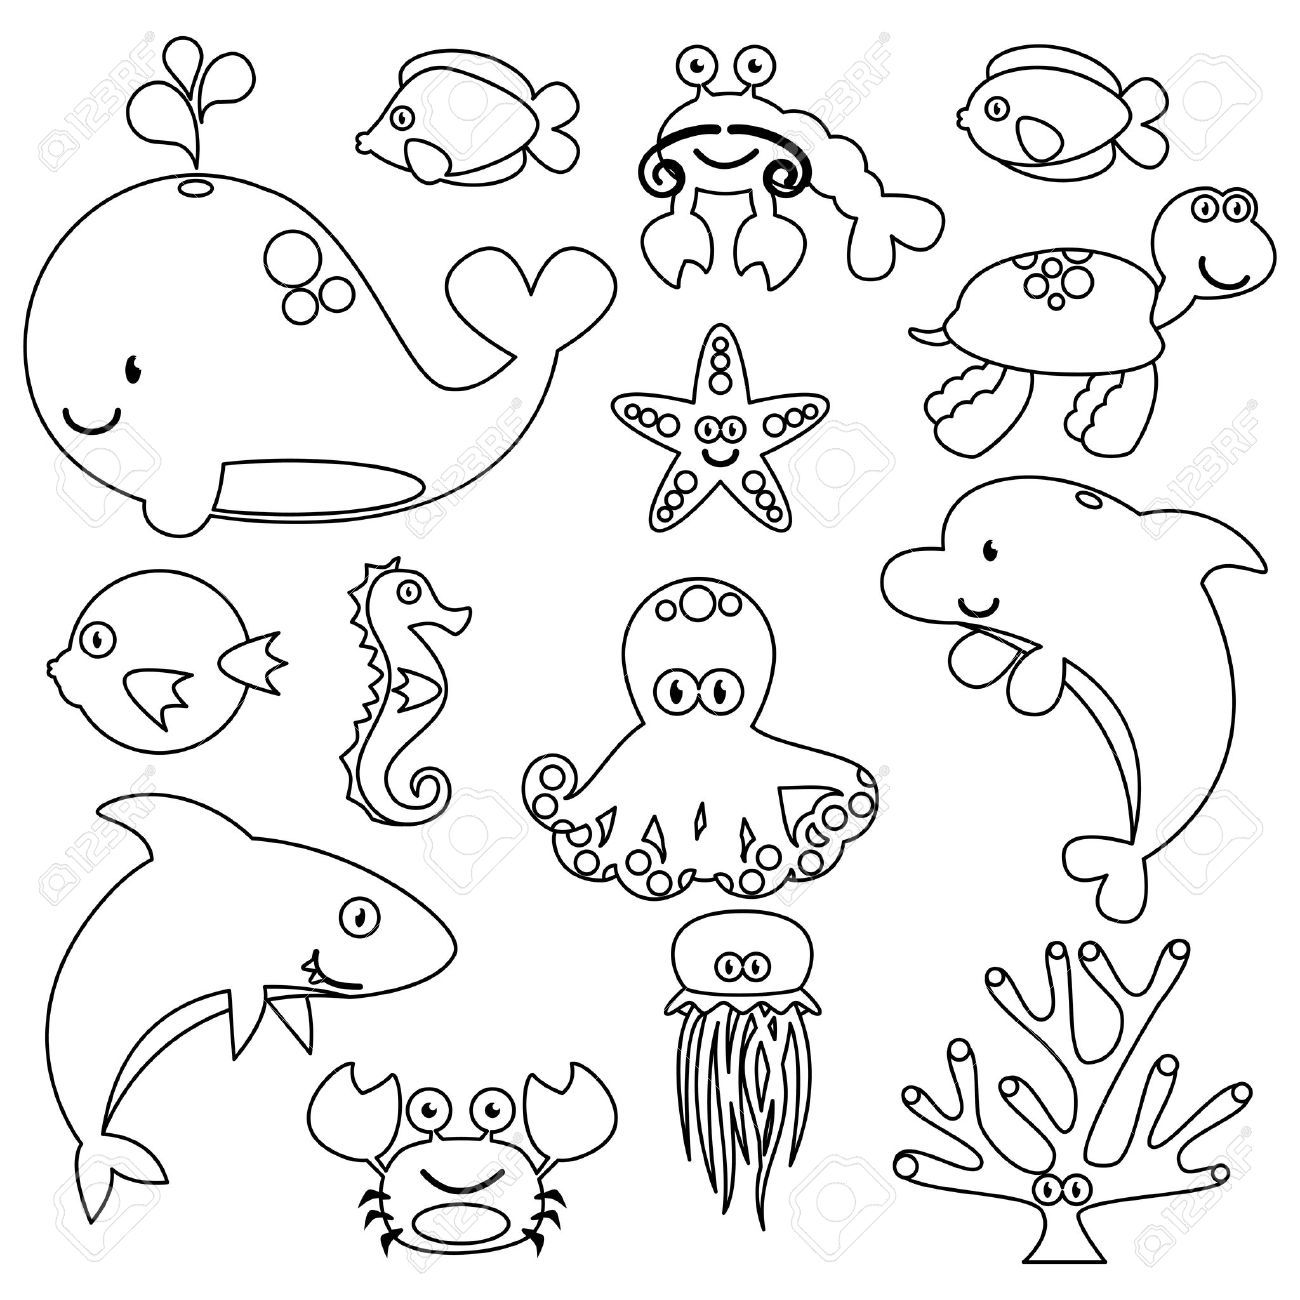 Image result for LINE DRAWINGS OF OCEAN CREATURES Sea